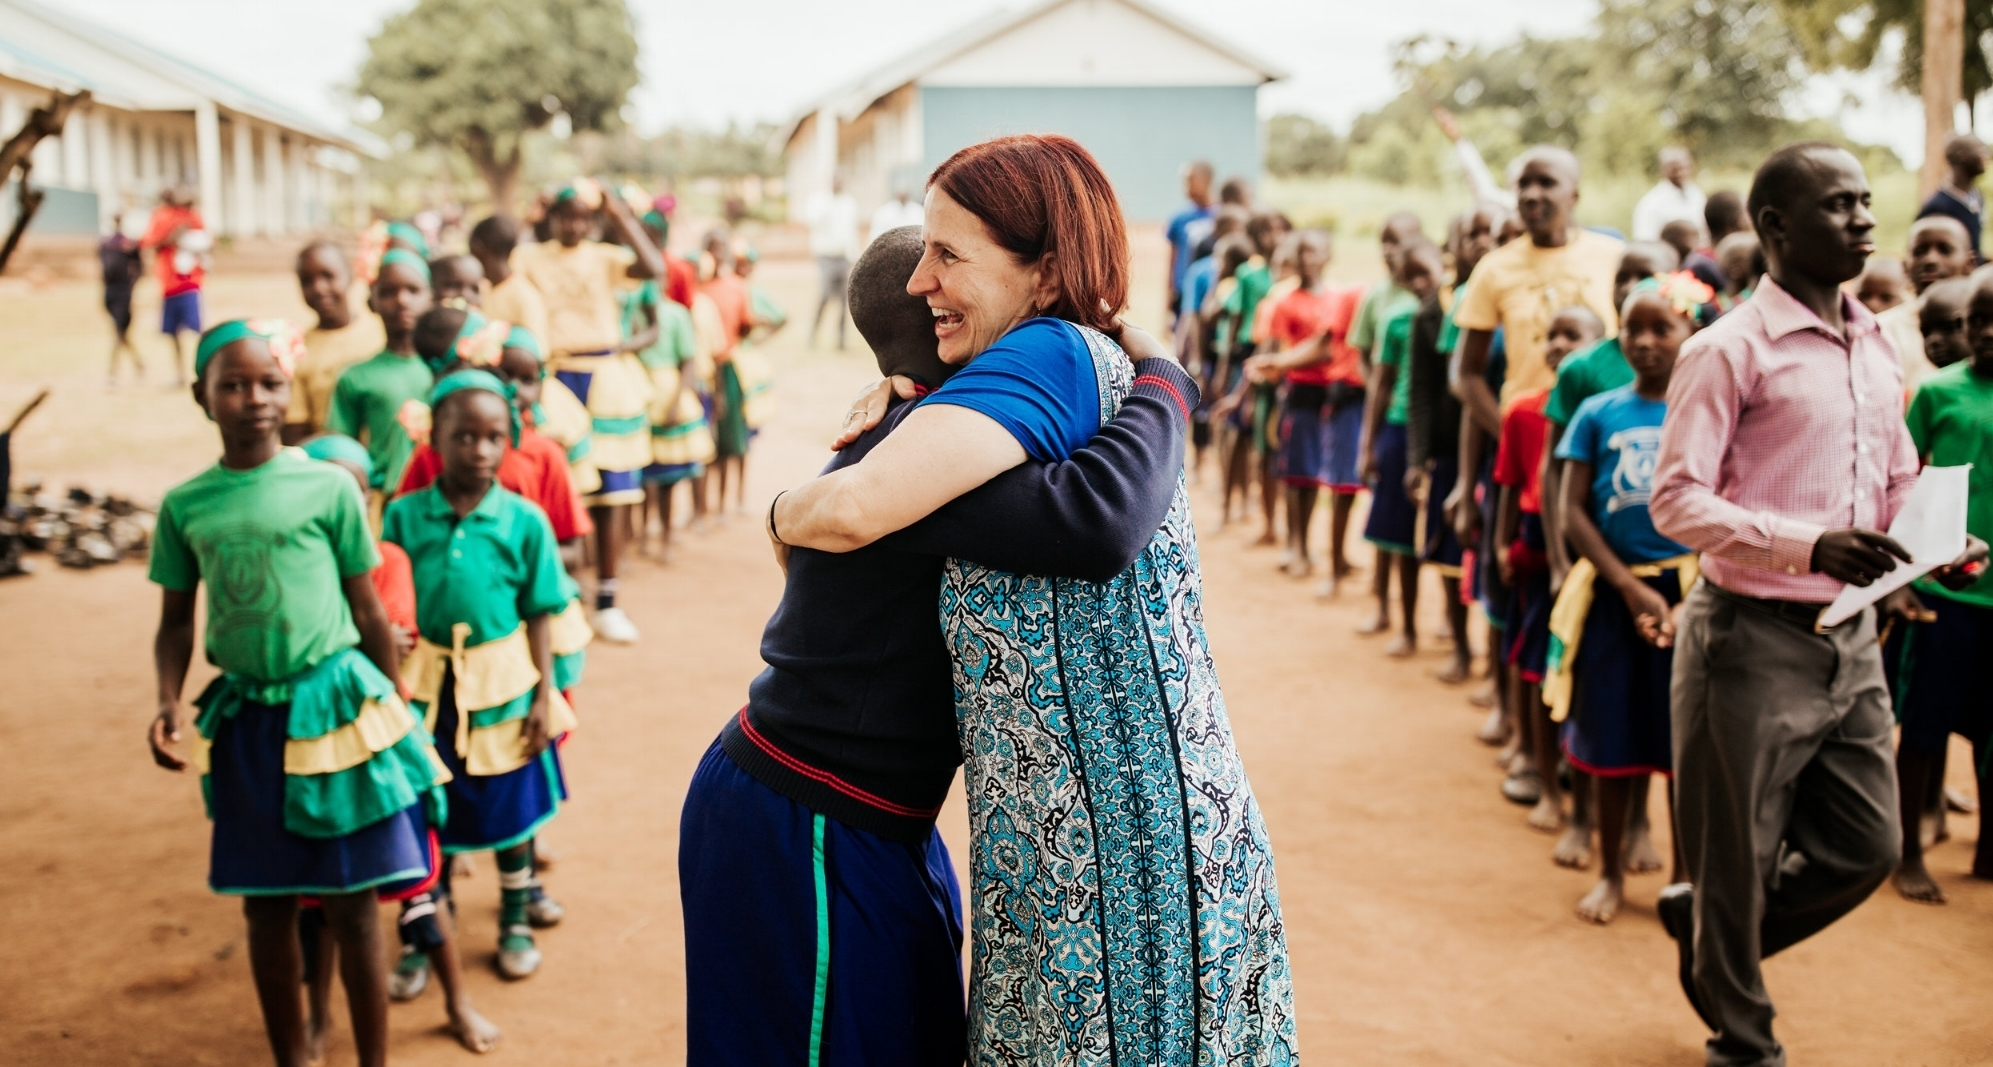 Saving Grace in Uganda has no paid U.S.A. staff - The ministry is overseen by a group of dedicated volunteers who serve with their talents, resources and time, making it possible to have no paid staff in the United States. Board members fund all administrative costs.